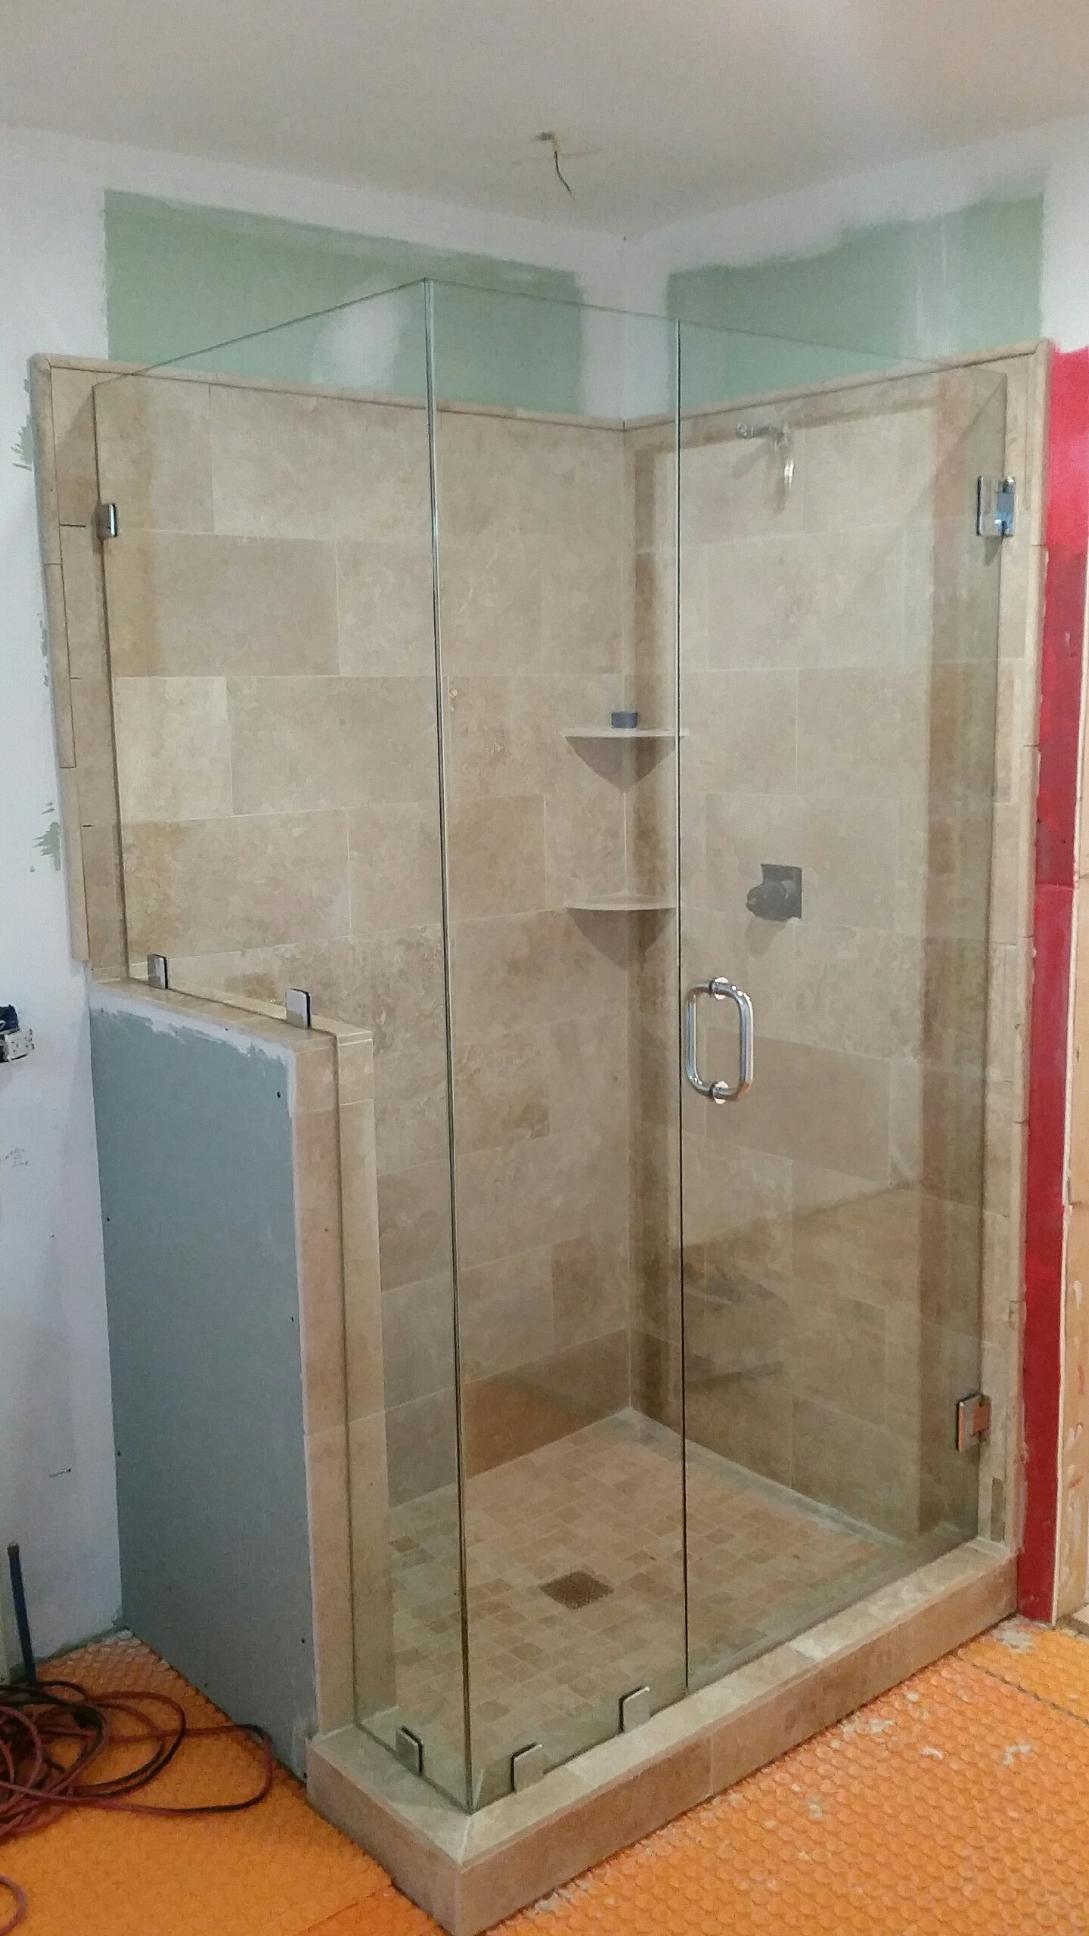 doors installation pricing fast all need mississauga turnaround we and for small residential quotes glass offers you s large mirror competitive that shower the castle offer